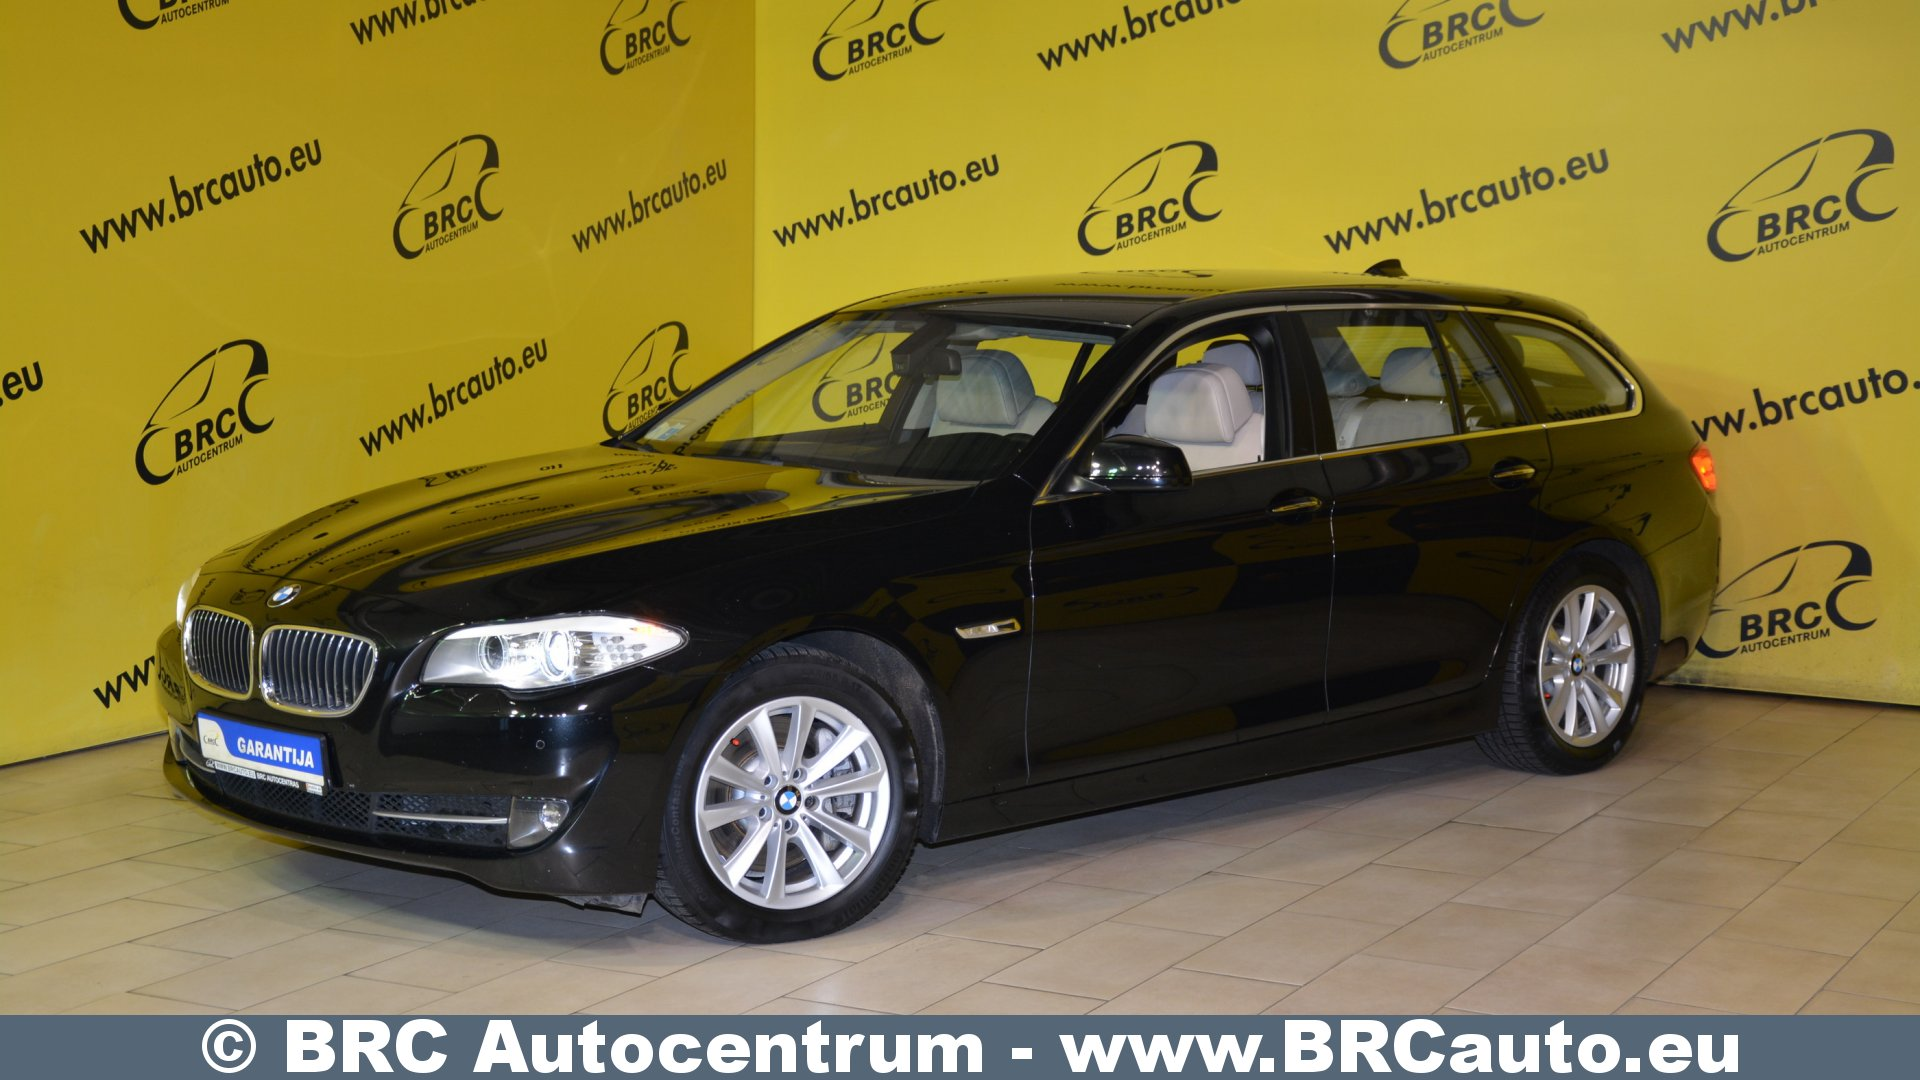 BMW 530 d Touring Automatas Reservation